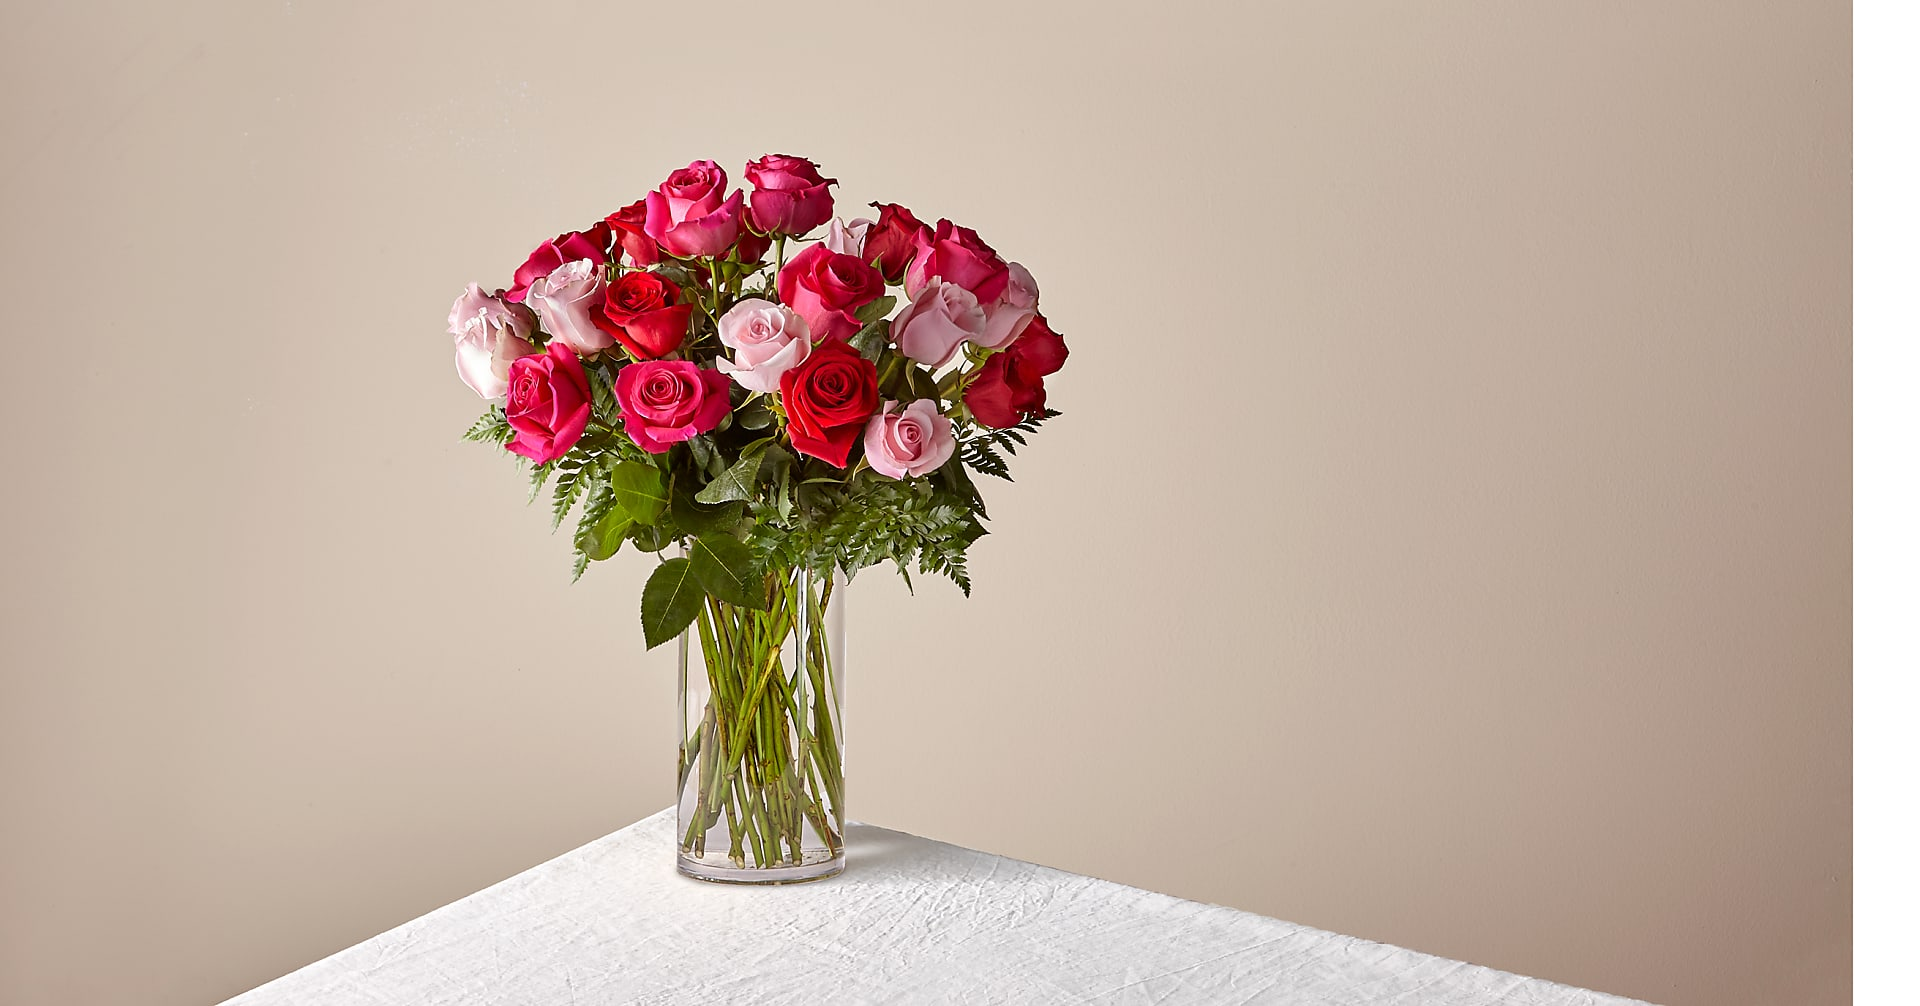 Rose Colored Love Bouquet - Image 5 Of 6